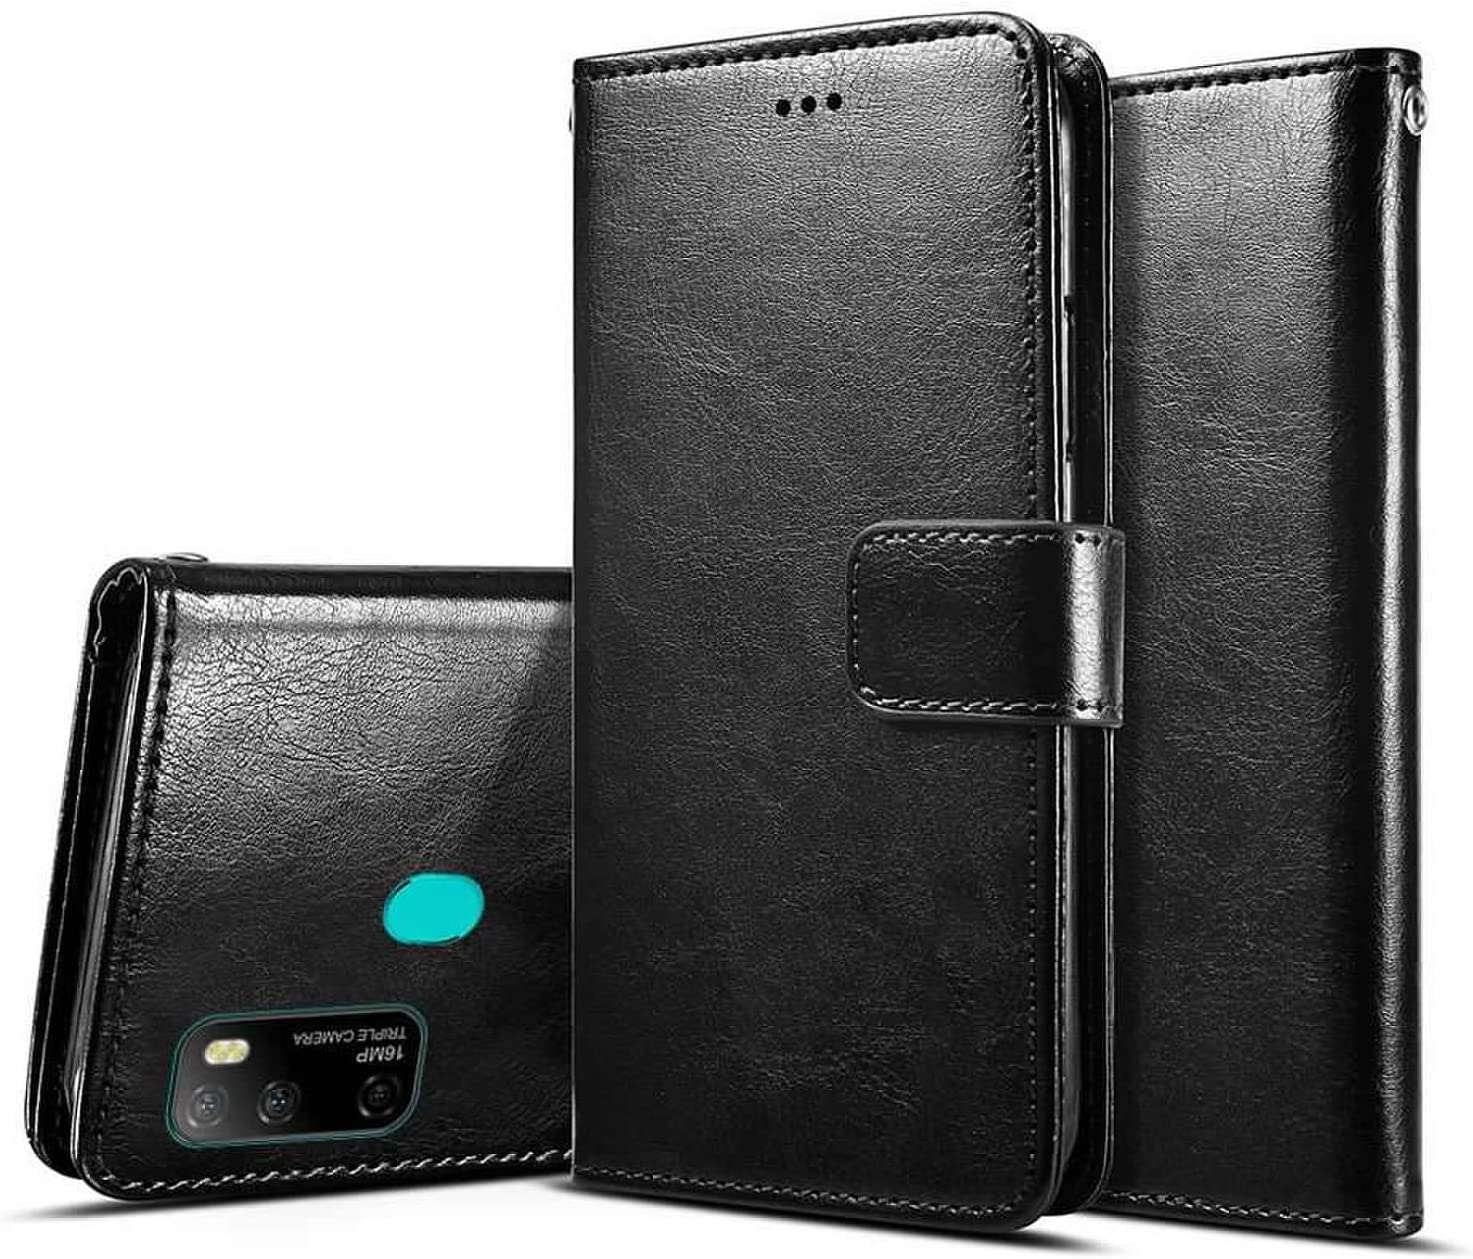 Ulefone Note 9P 2020 Wallet Case 6.52 Ulefone Note 9P Case with Screen Protector,PU Leather Wrist Strap Card Slots Soft TPU Shockproof Protective Flip Cover Case,Black